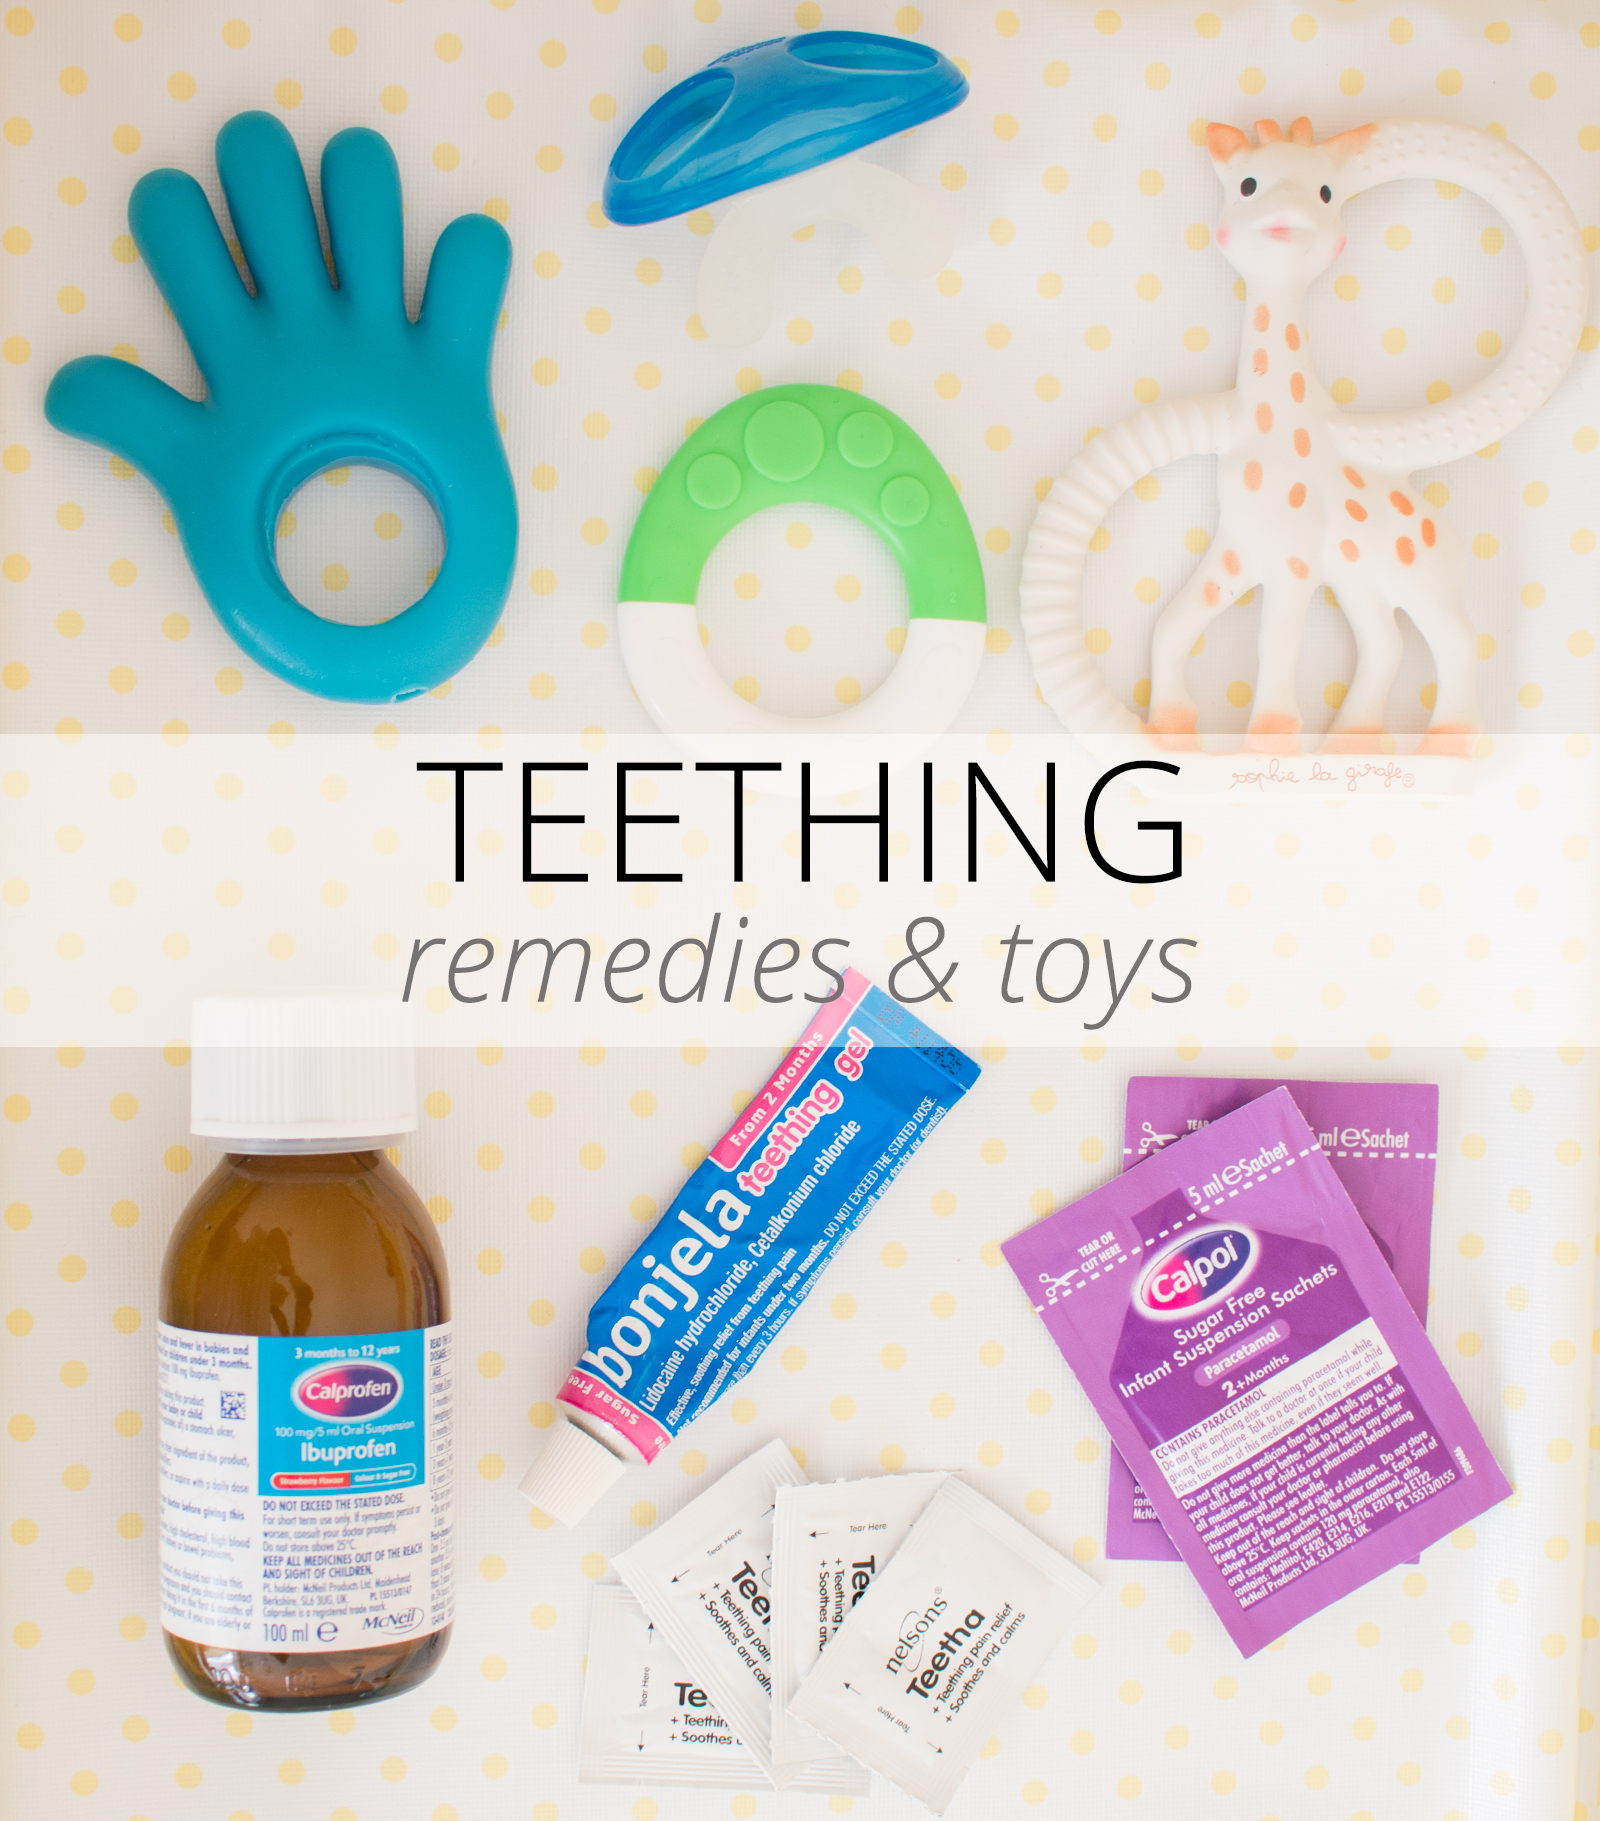 How To Help A Teething Baby - Toys, Remedies, Pain Relief